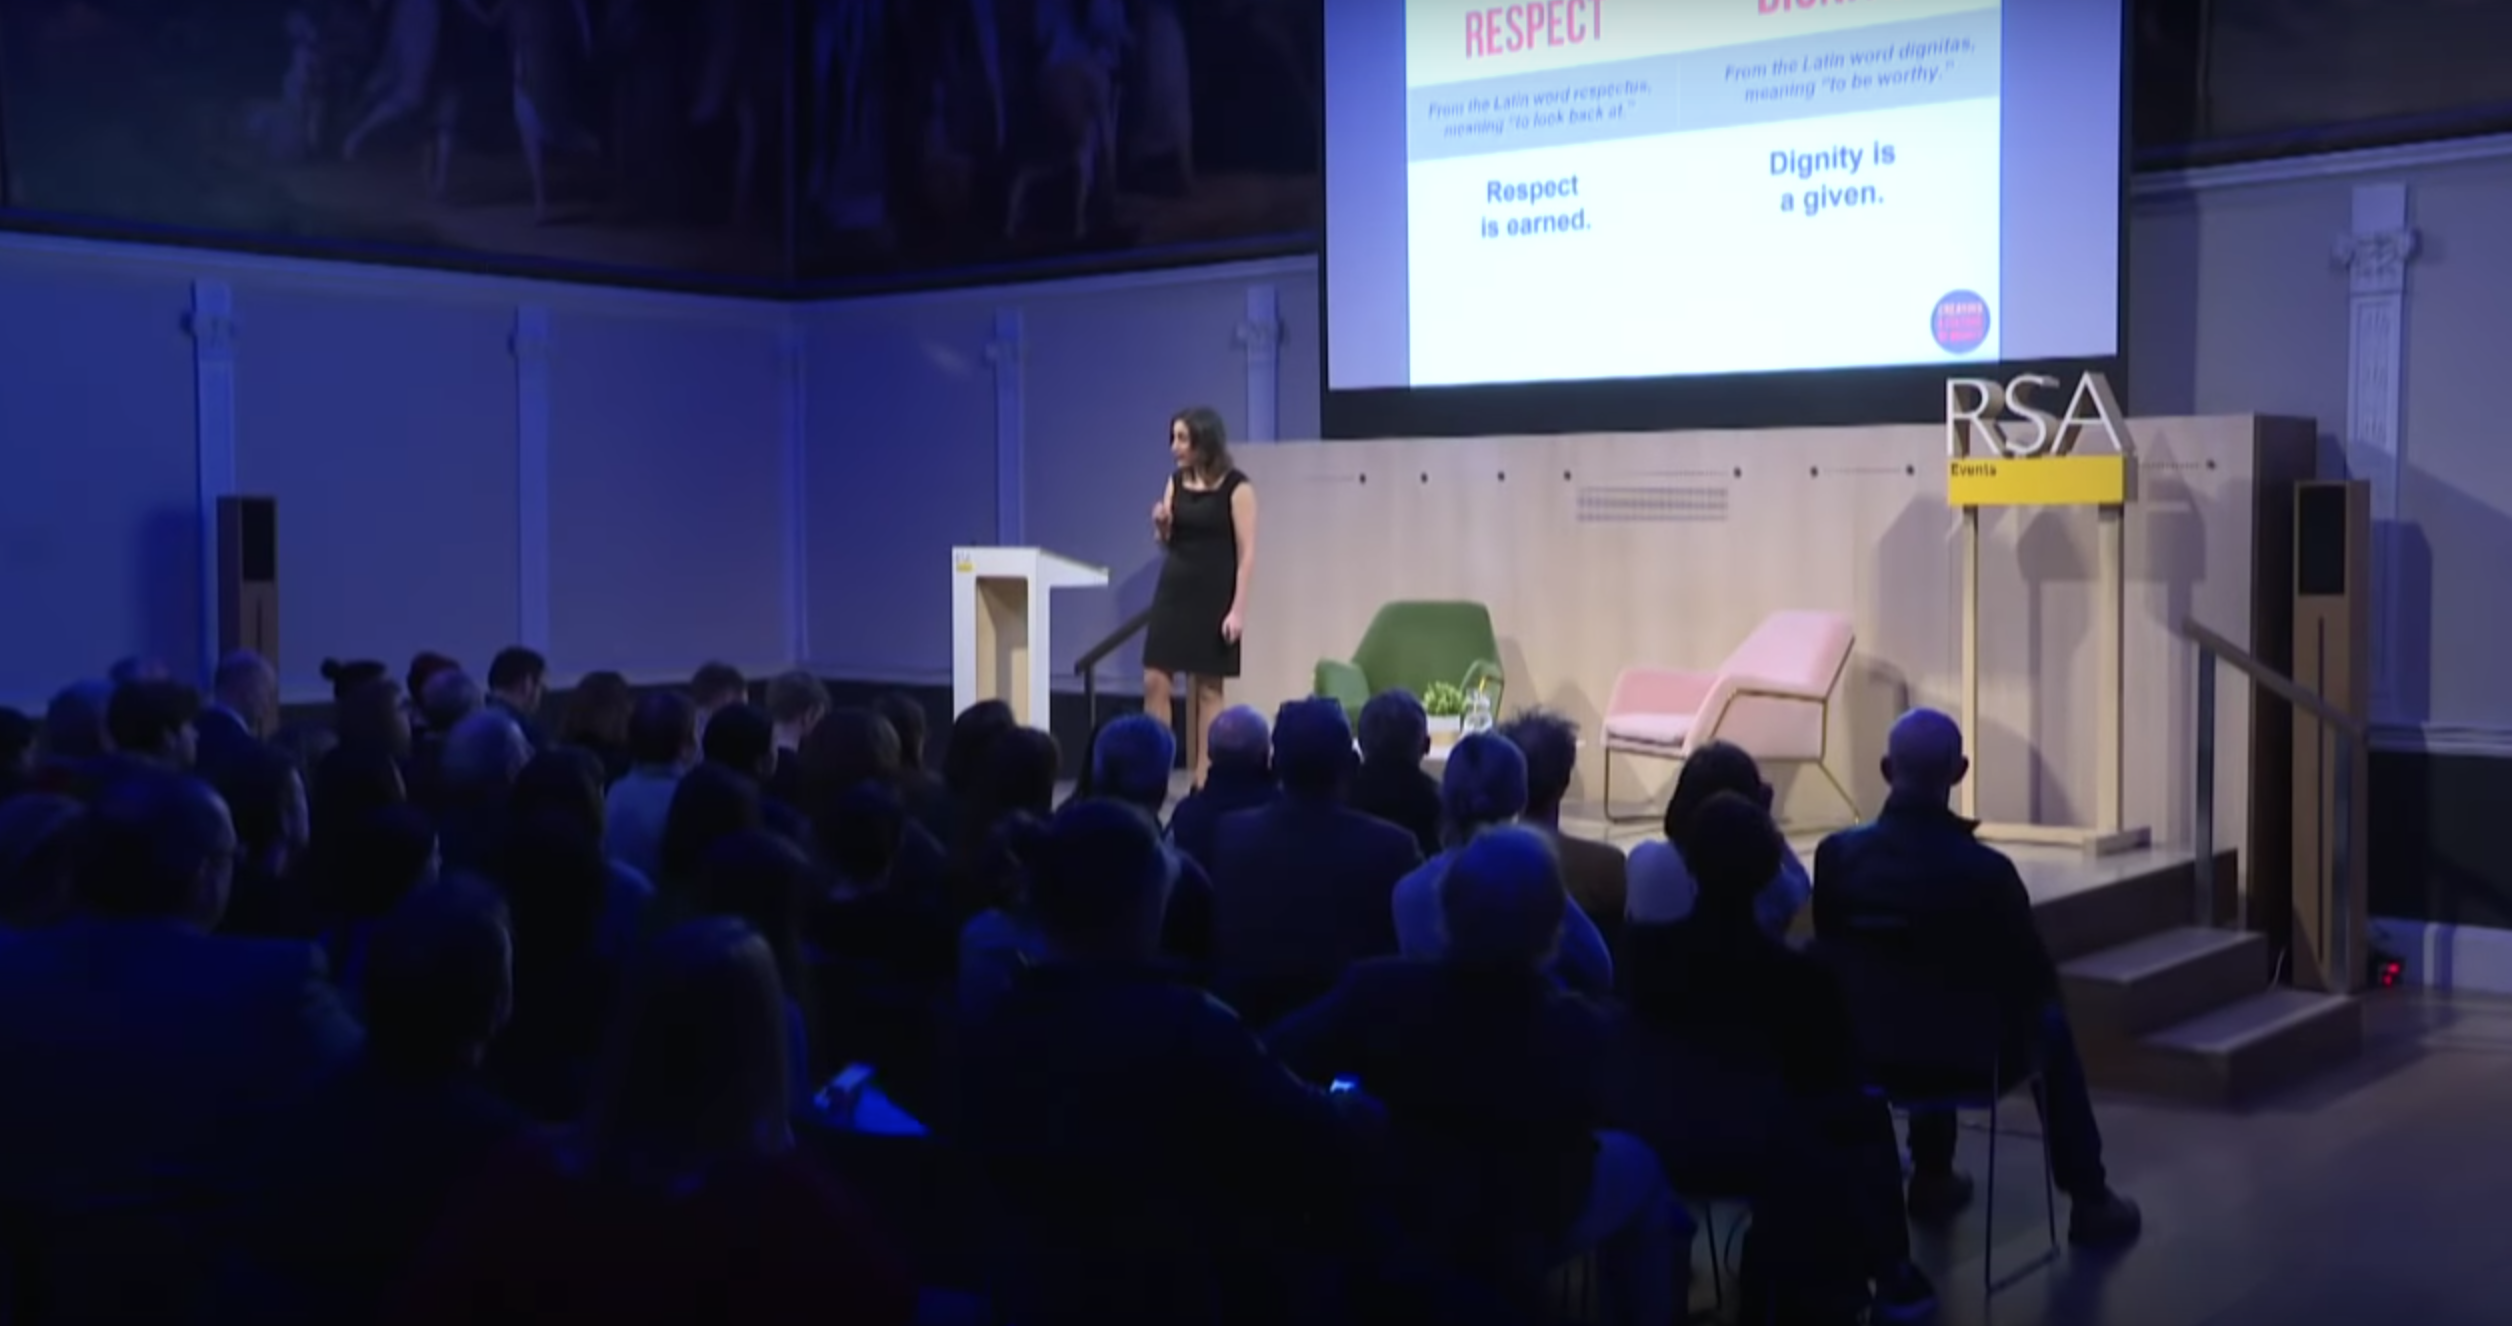 VIDEO: How to Reclaim Dignity for Young People – Rosalind Wiseman